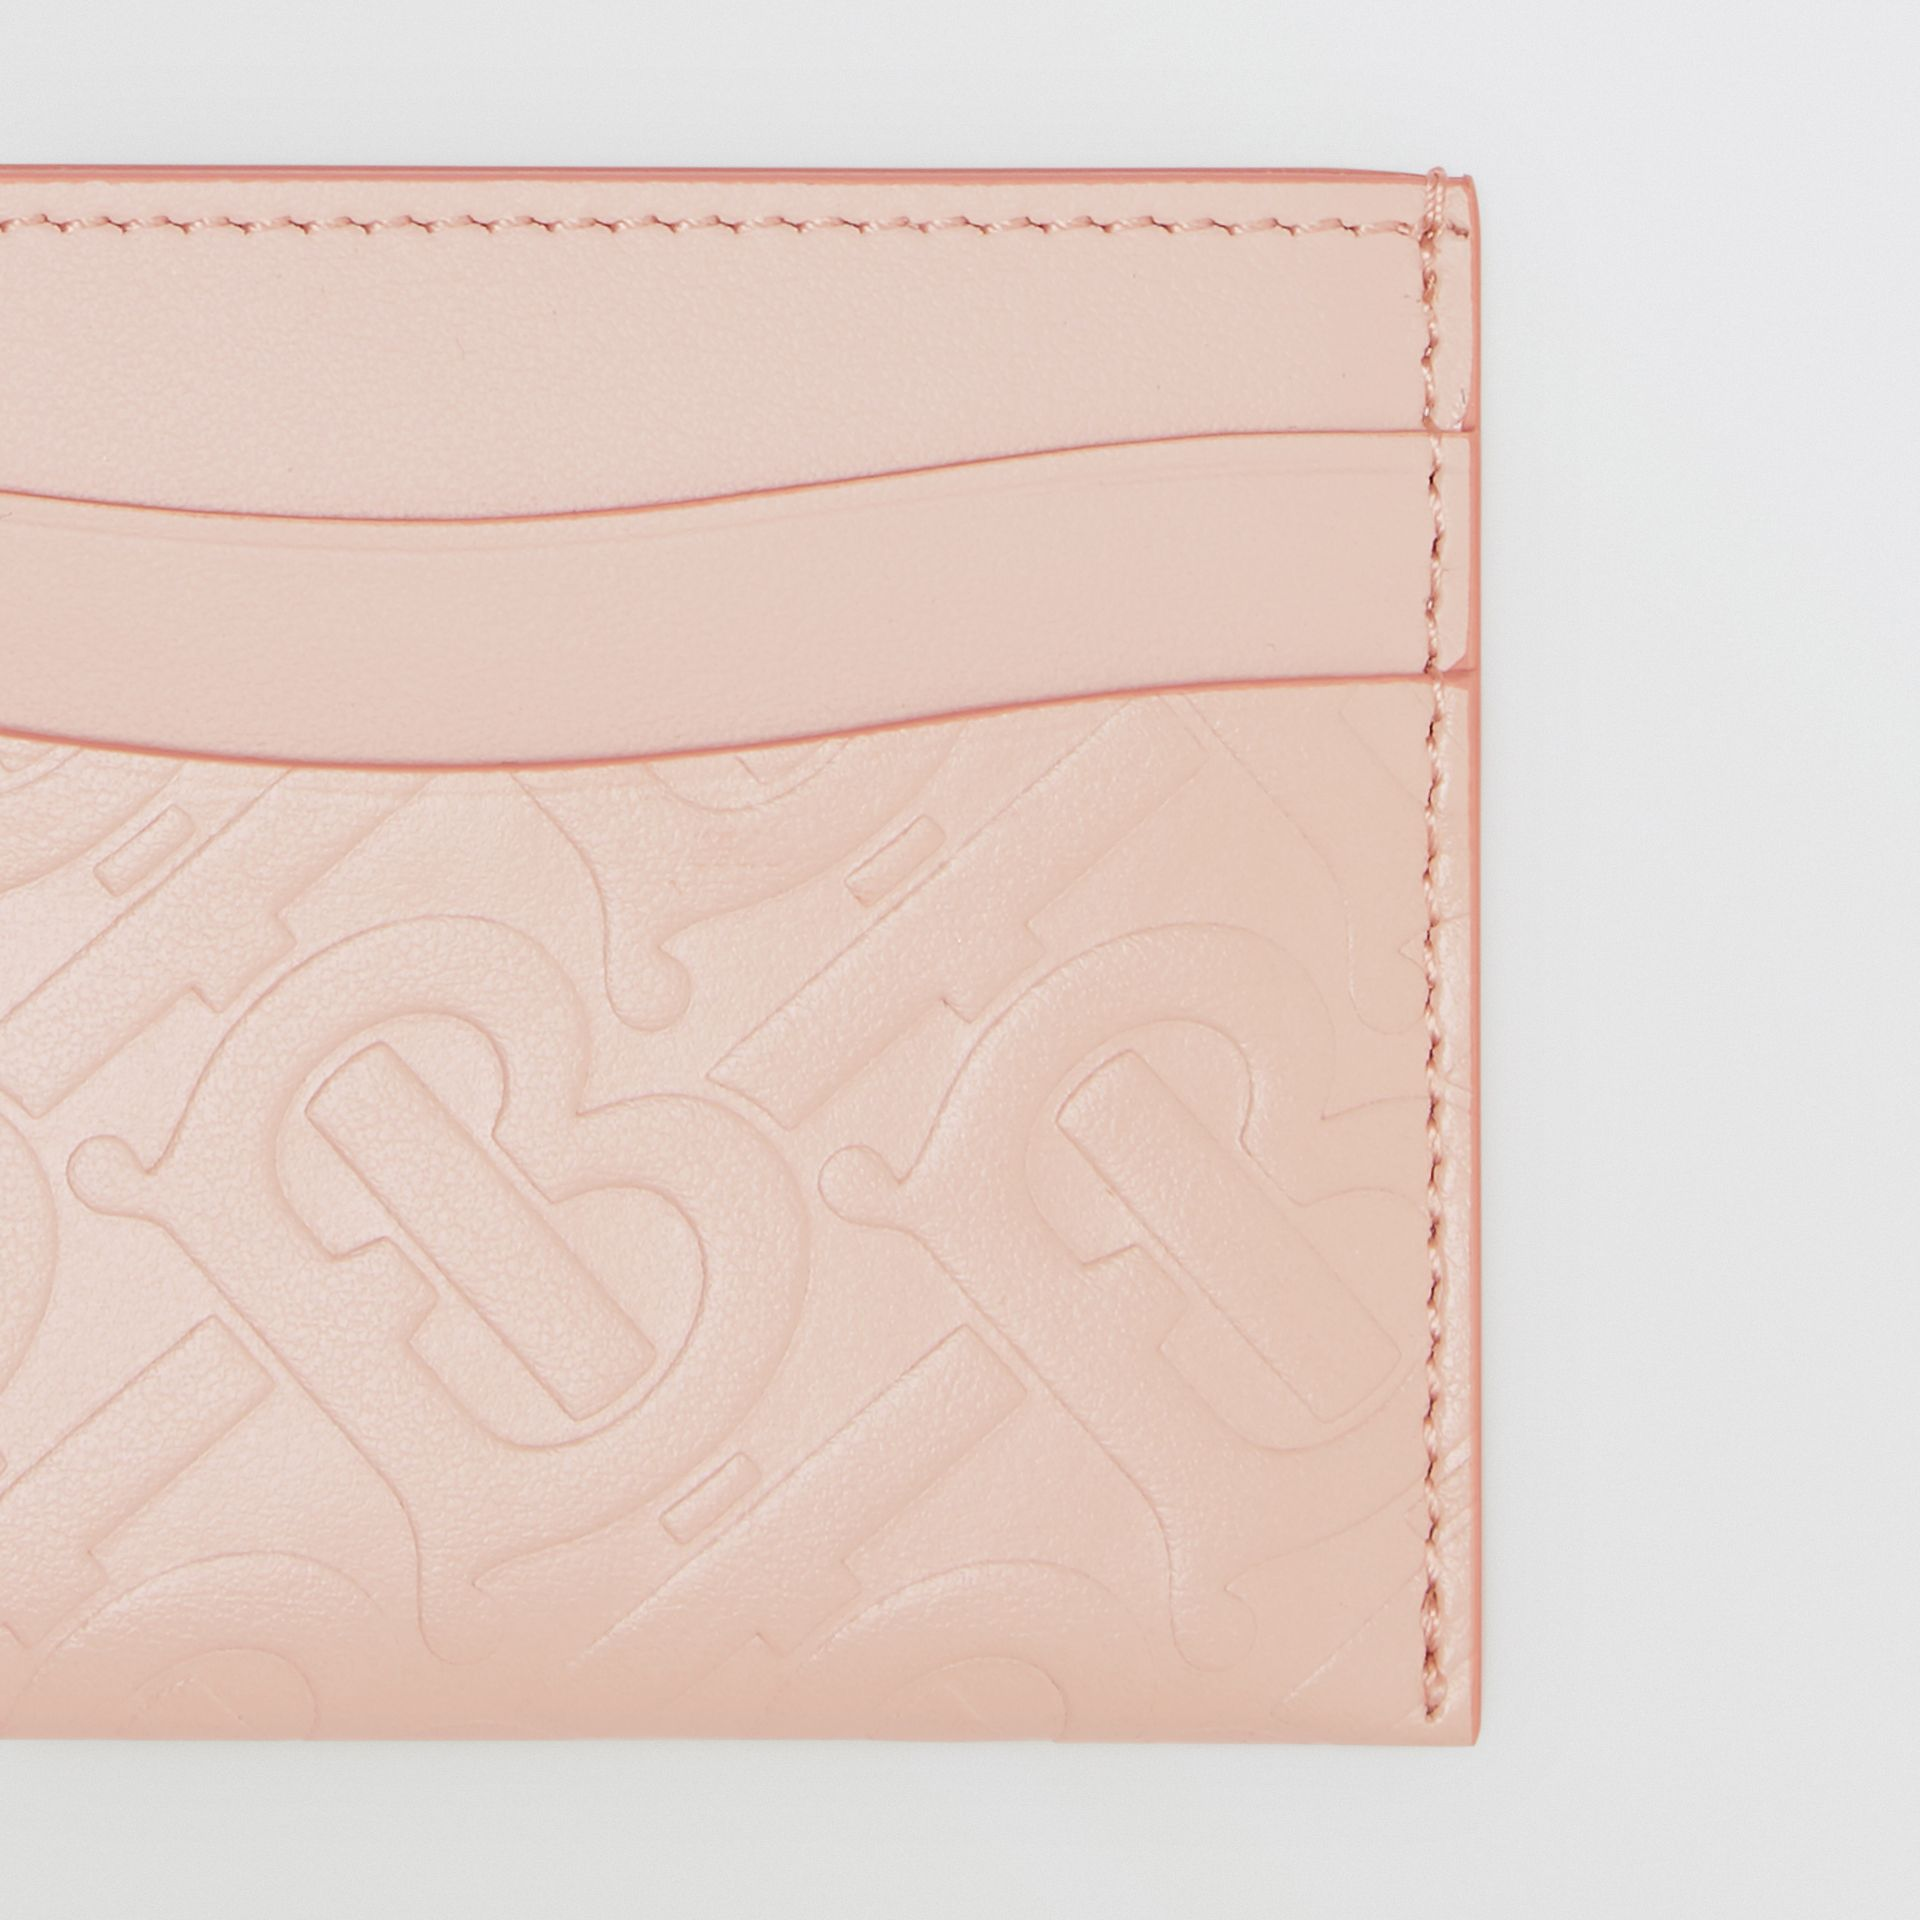 Monogram Leather Card Case in Rose Beige - Women | Burberry United Kingdom - gallery image 1